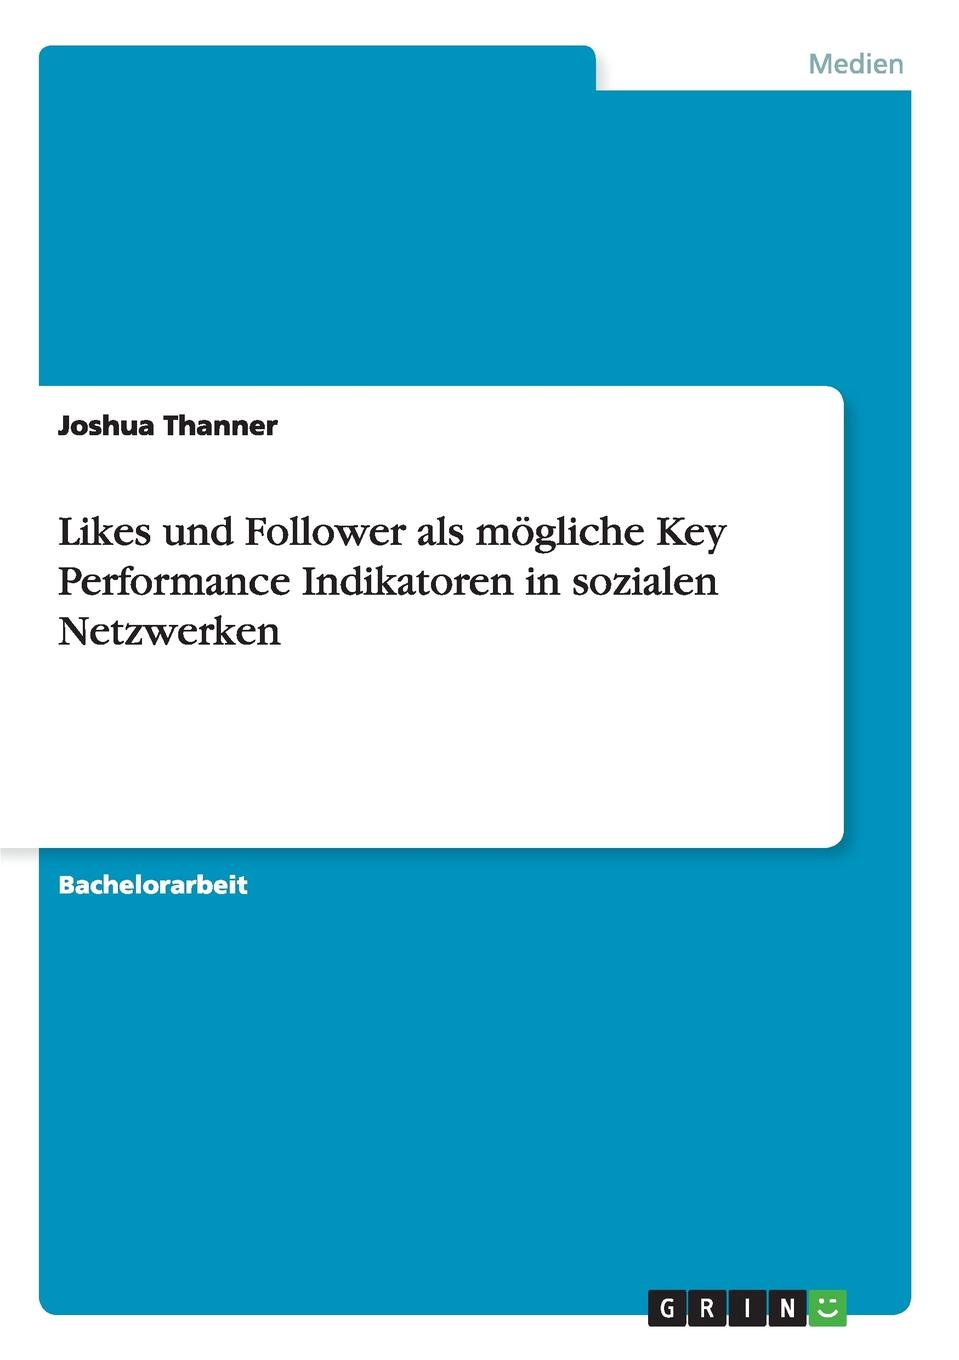 Joshua Thanner Likes und Follower als mogliche Key Performance Indikatoren in sozialen Netzwerken неустановленный автор influencer marketing in sozialen netzwerken als strategisches instrument im social media marketing